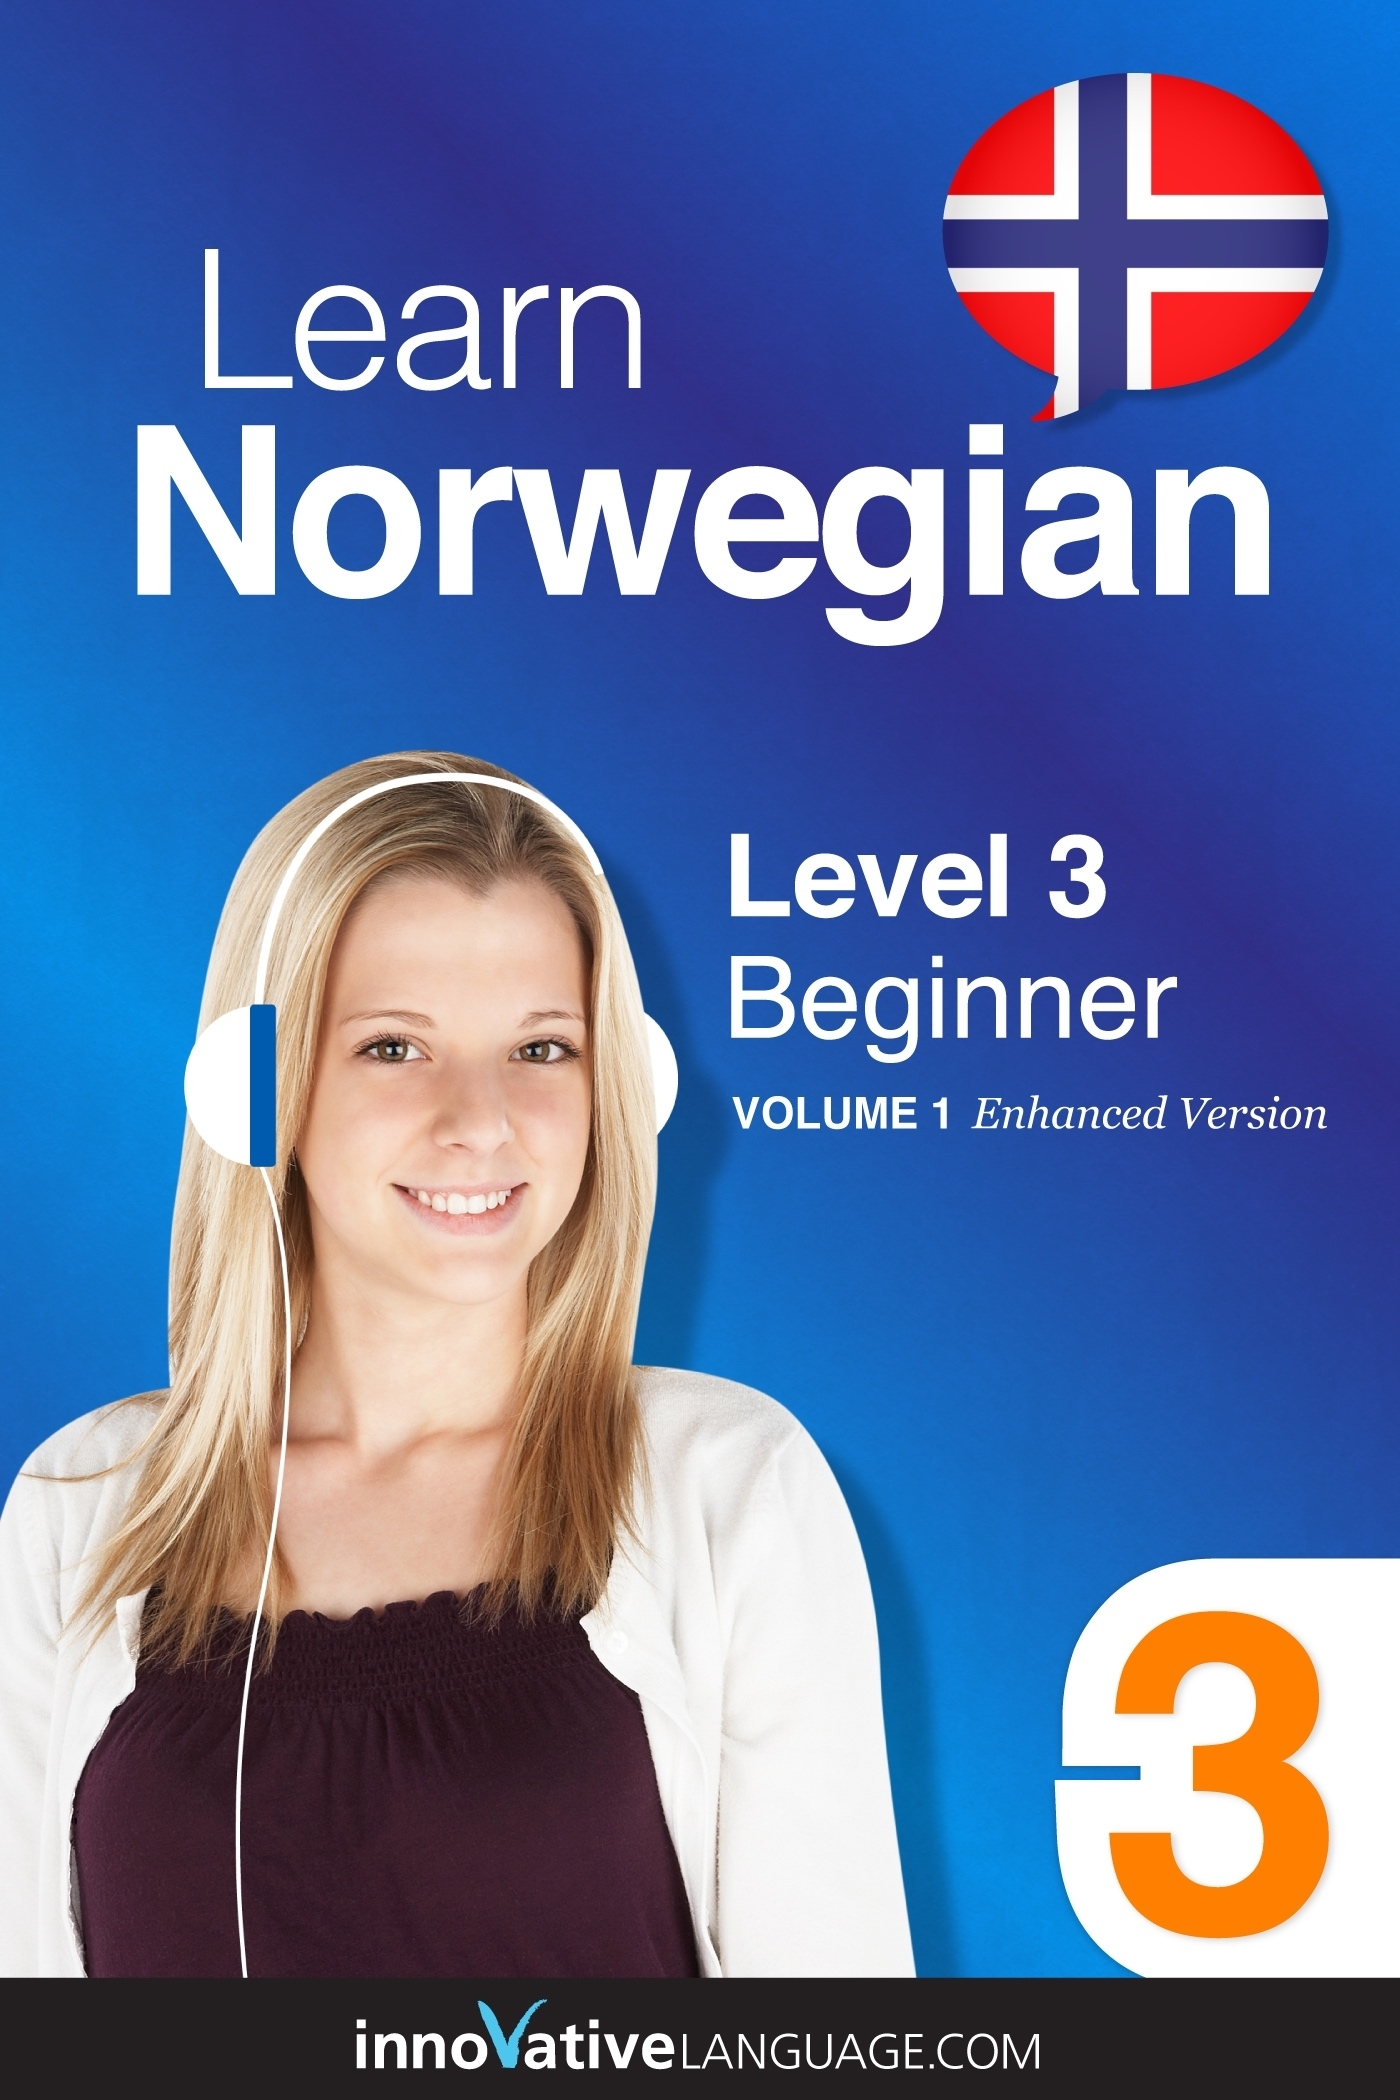 [eBook] Learn Norwegian - Level 3: Beginner